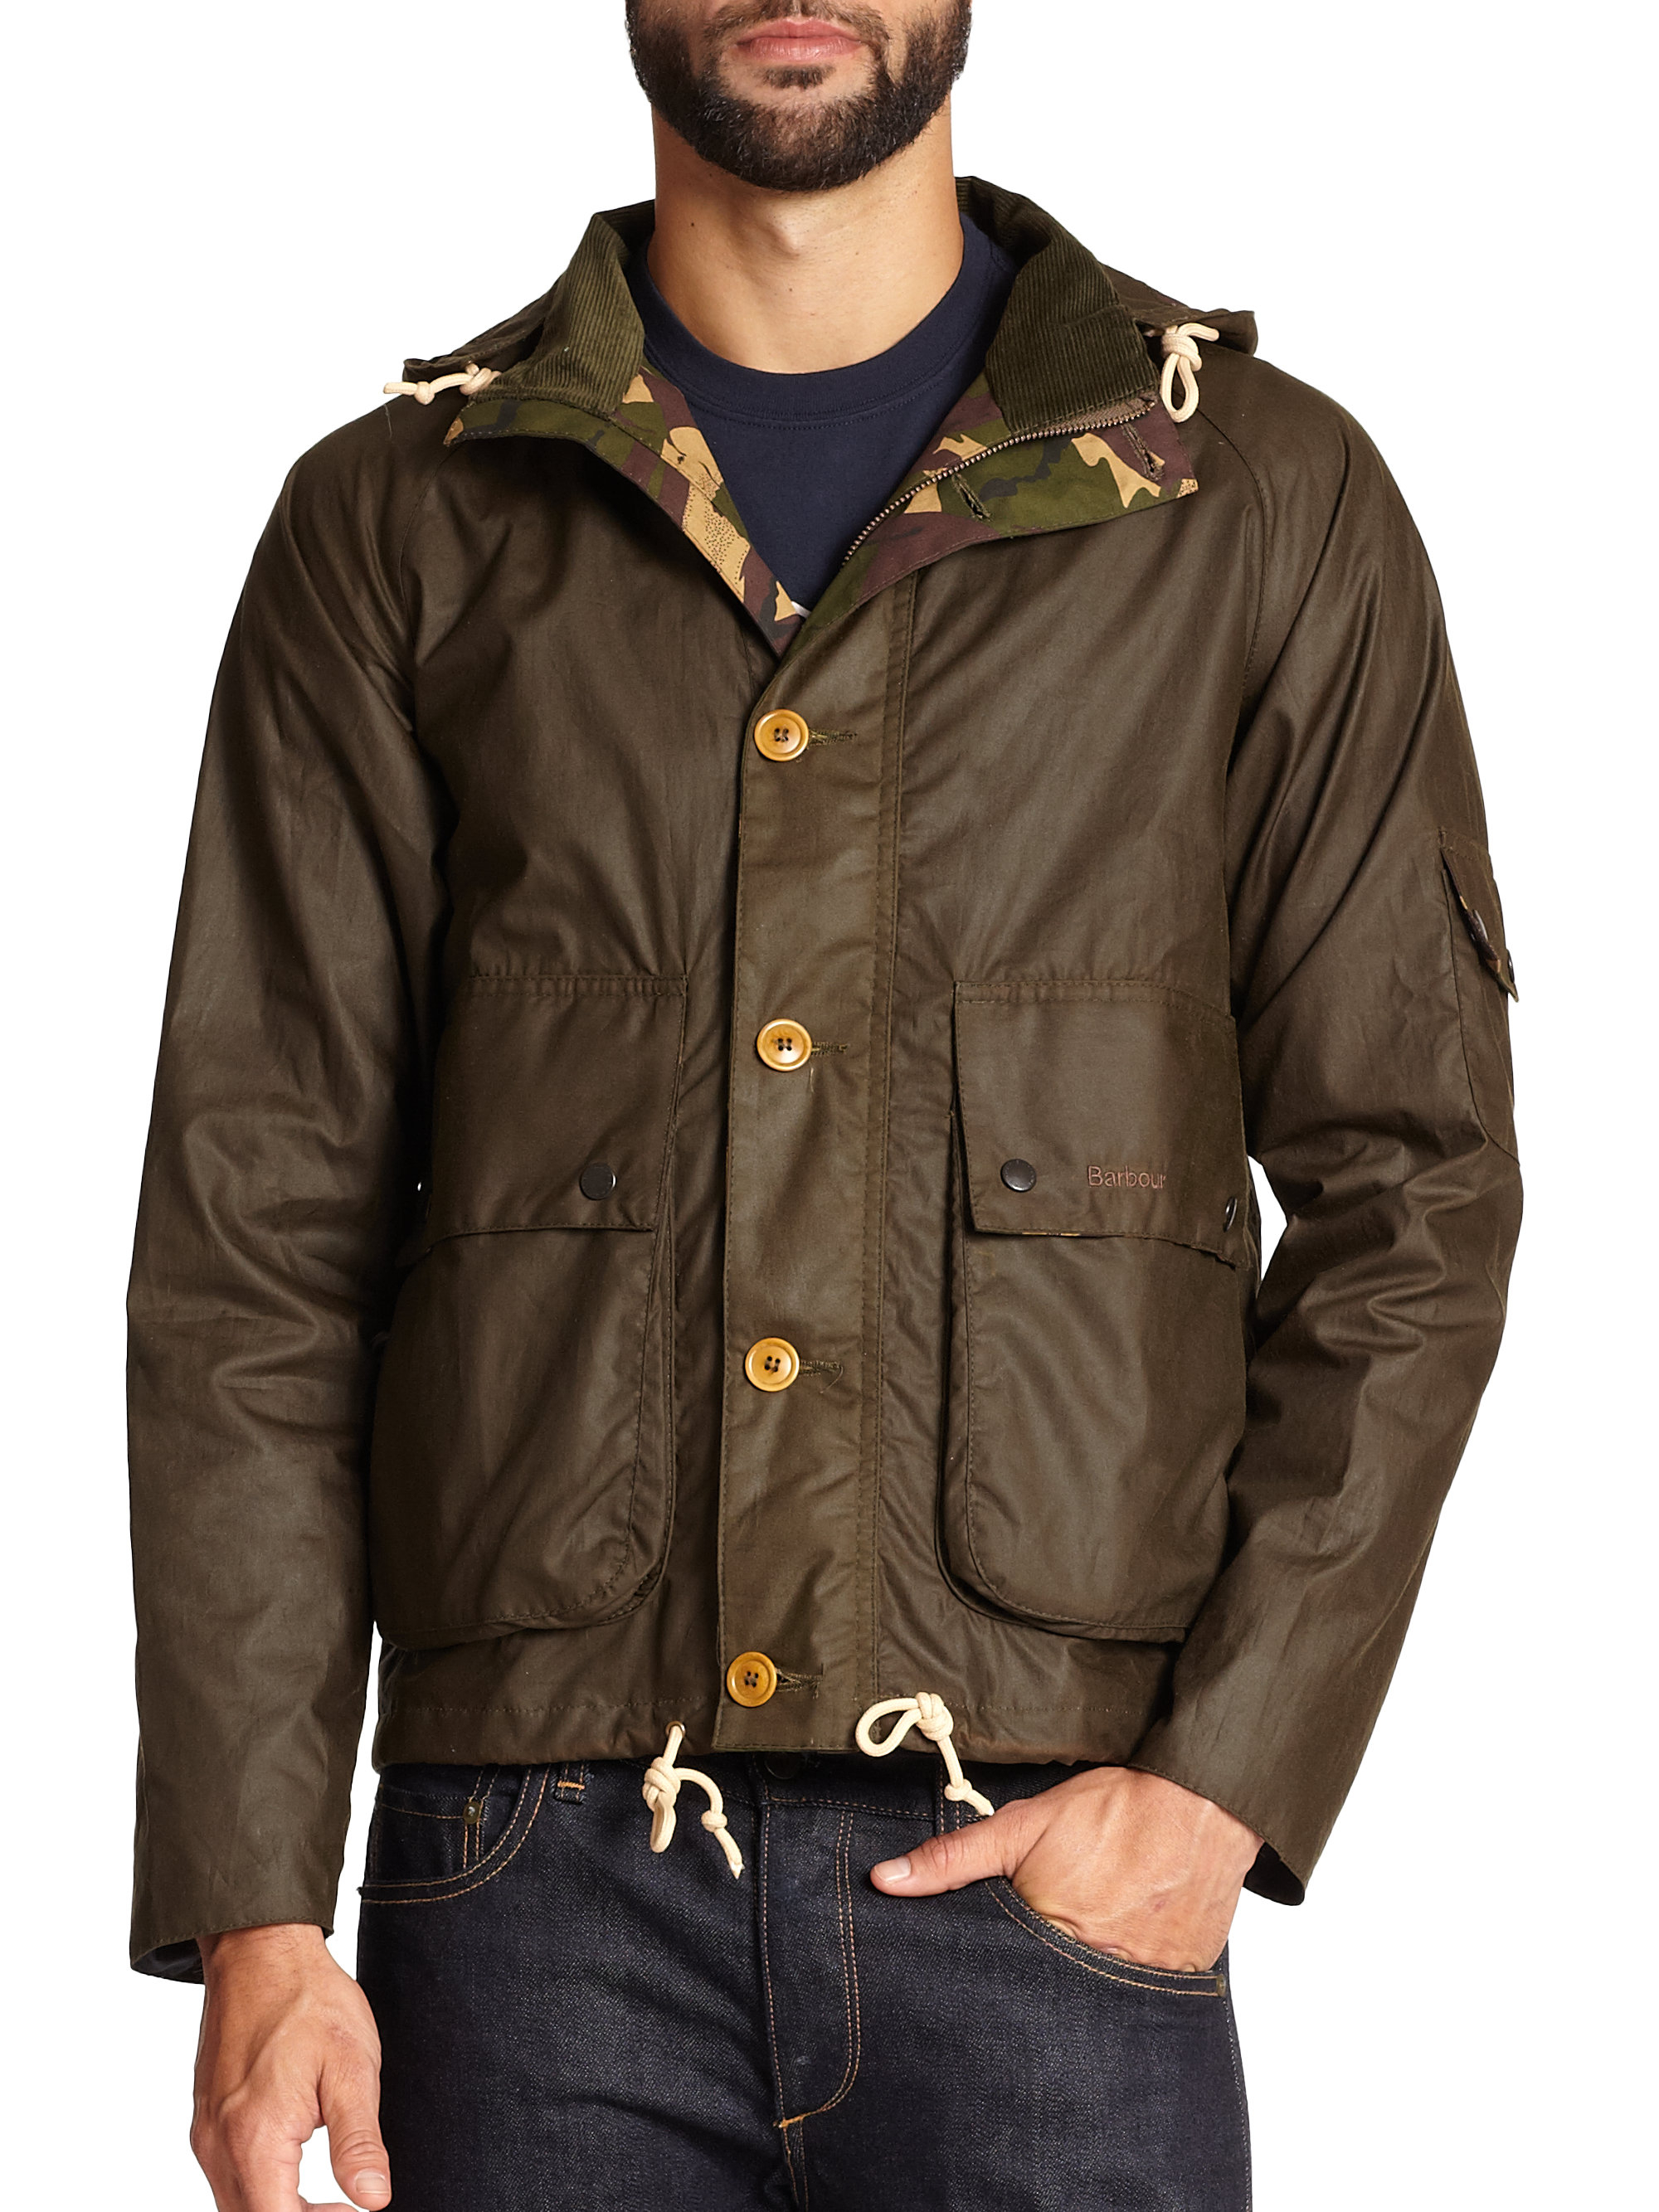 Barbour Overland Waxed Cotton Jacket In Green For Men Lyst